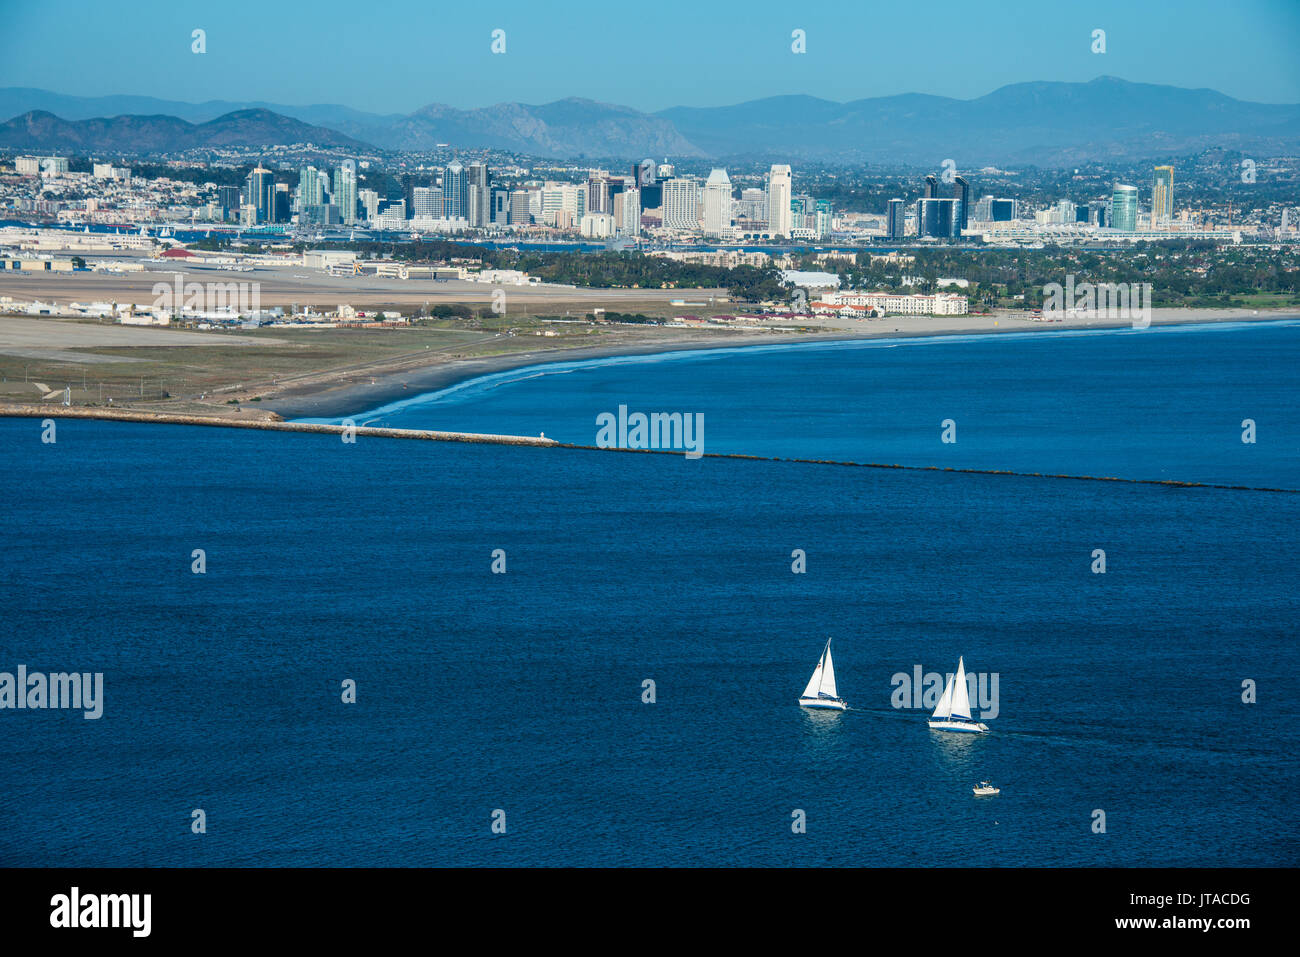 View over San Diego Bay from the Cabrillo National Monument, Point Loma, San Diego, California, USA, North America - Stock Image